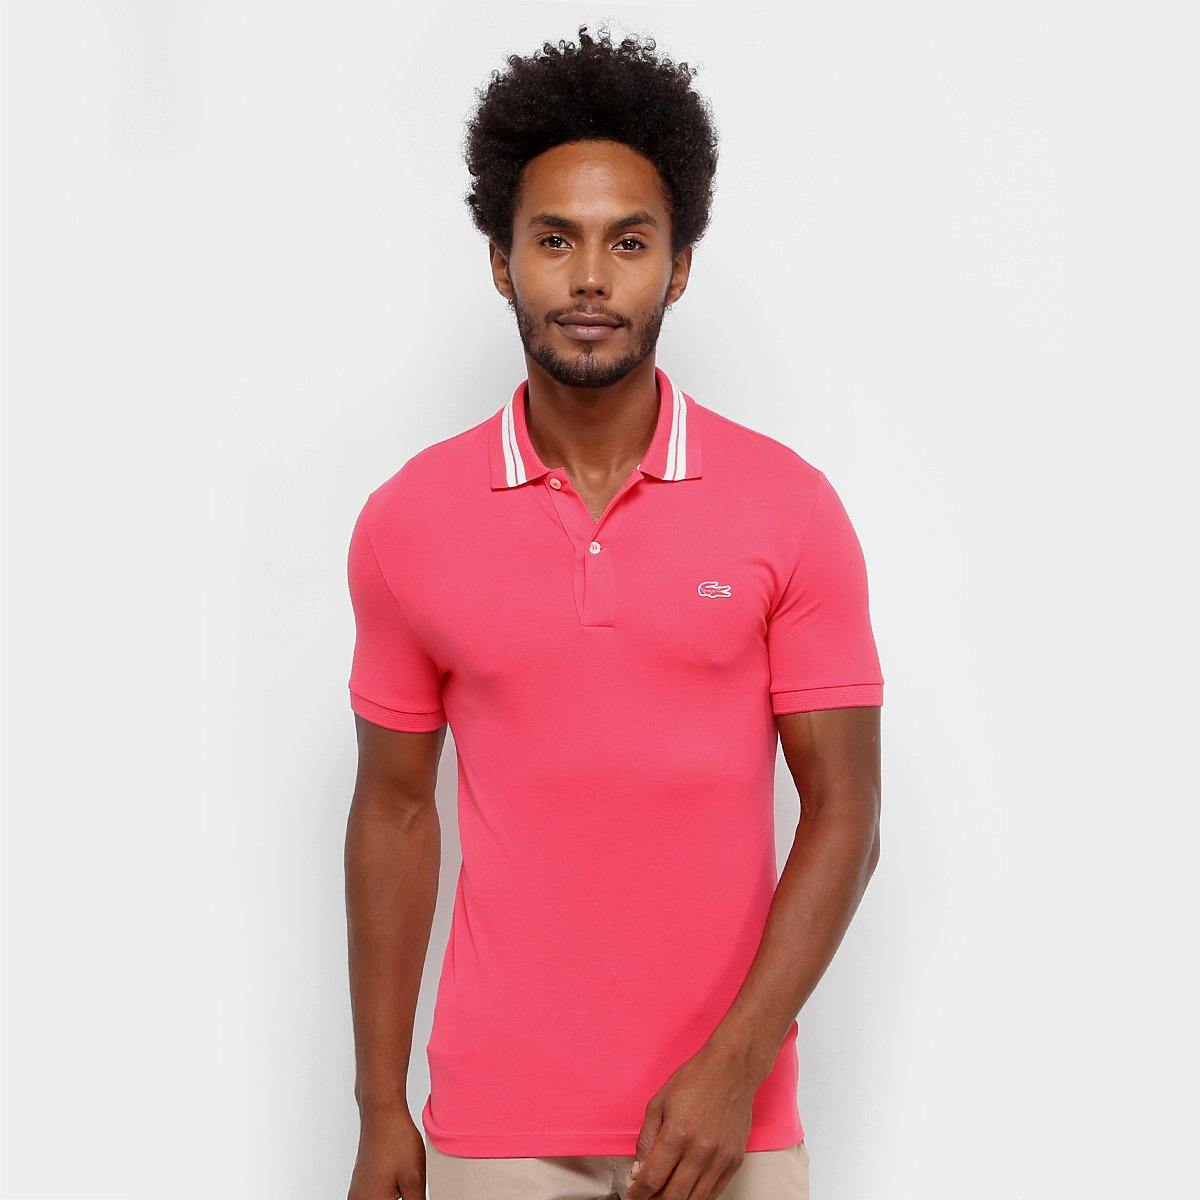 new style b419a 561a6 Camisa Polo Lacoste Piquet Slim Fit Rubber Croco Masculina - Rosa